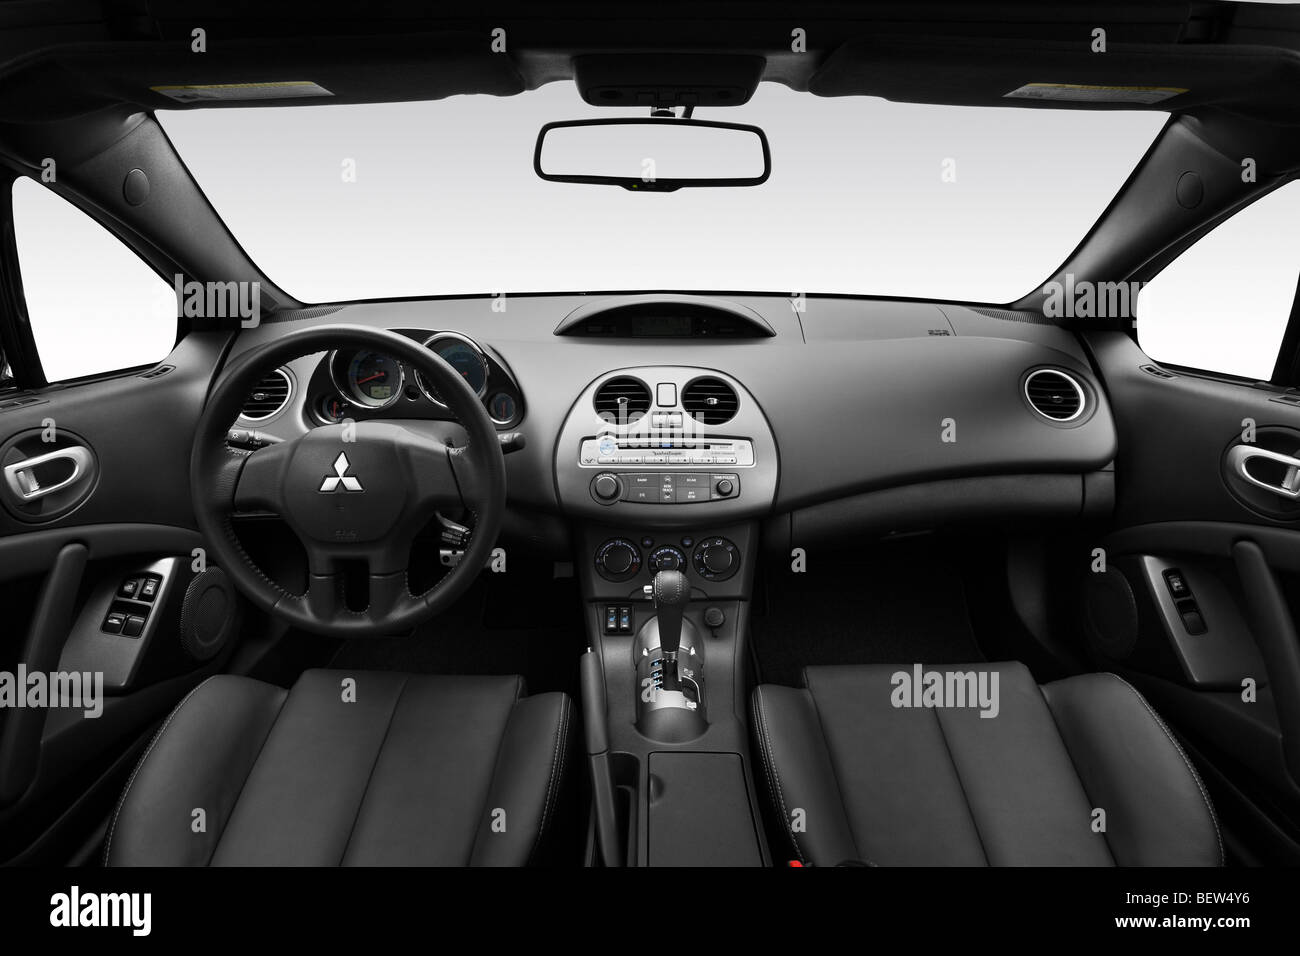 2010 mitsubishi eclipse spyder gt in black dashboard center console gear shifter view